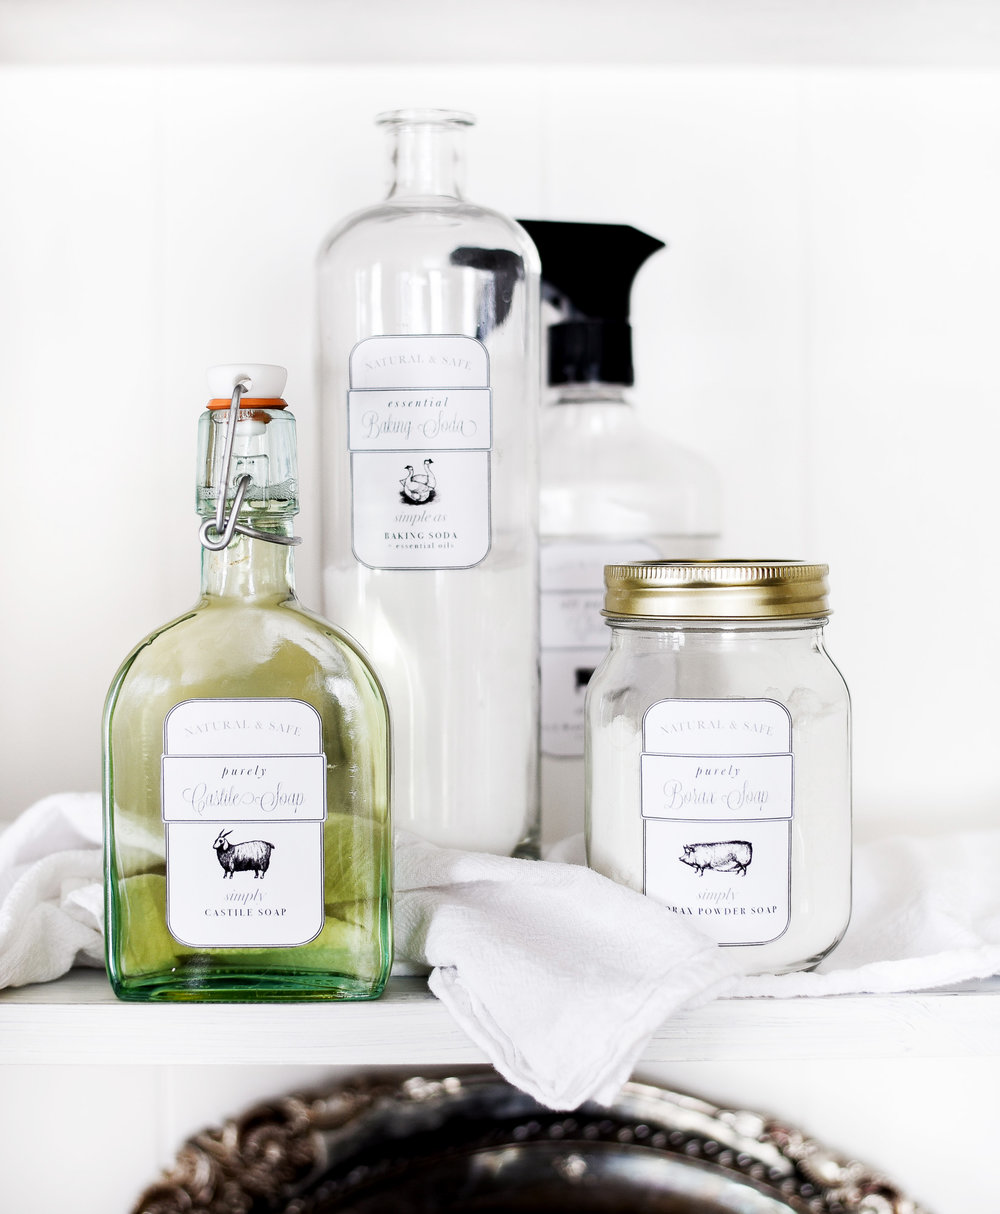 Make your own cheap and safe cleaning products with labels from boxwoodavenue.com